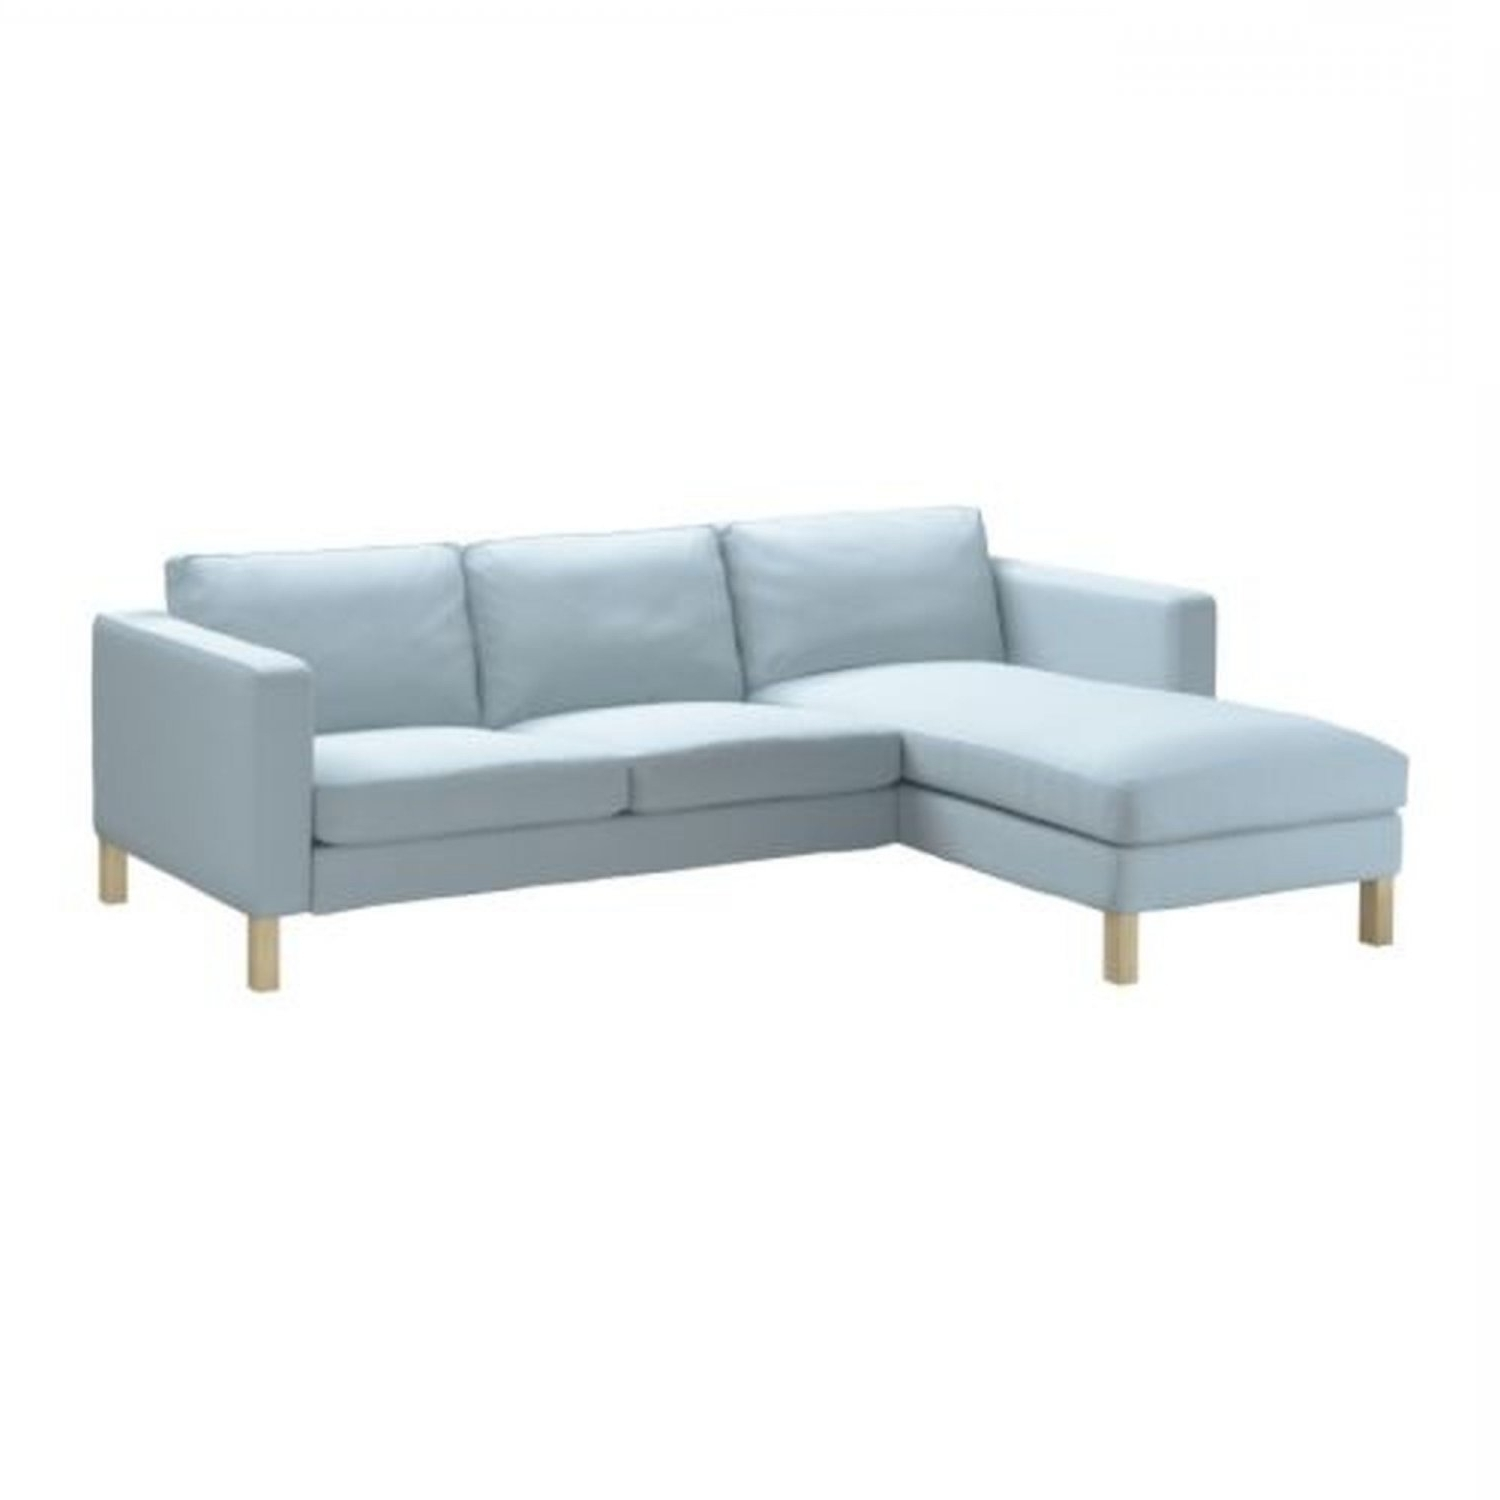 Well Liked Ikea Karlstad Chaises With Furniture: Ikea Karlstad Sofa Ikea Kivik Chair Discontinued (View 14 of 15)